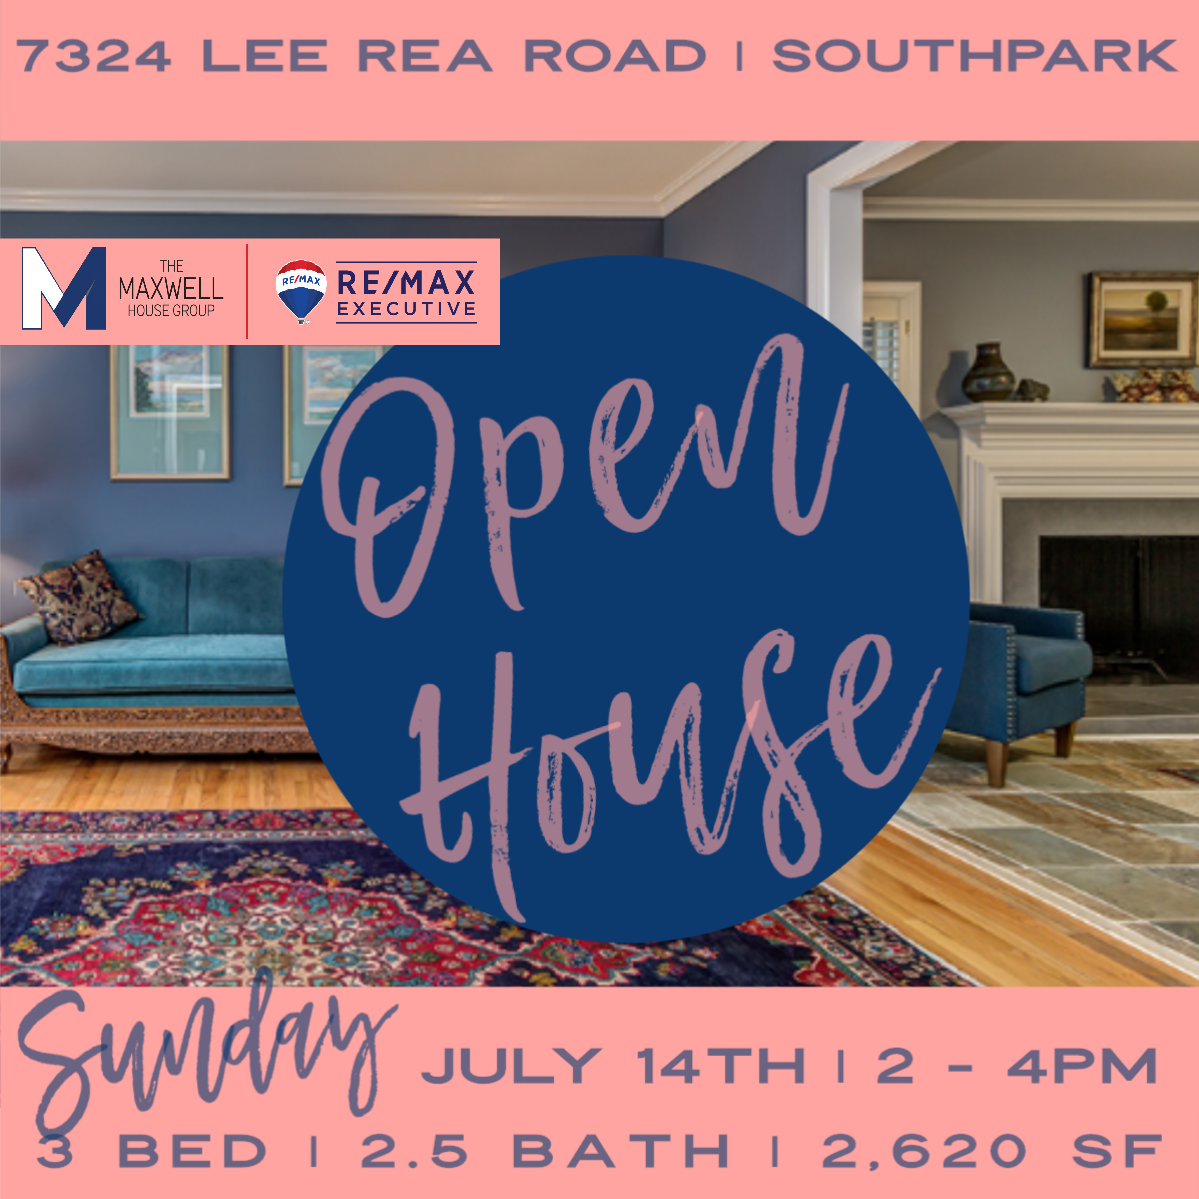 SouthPark Open House THIS WEEKEND